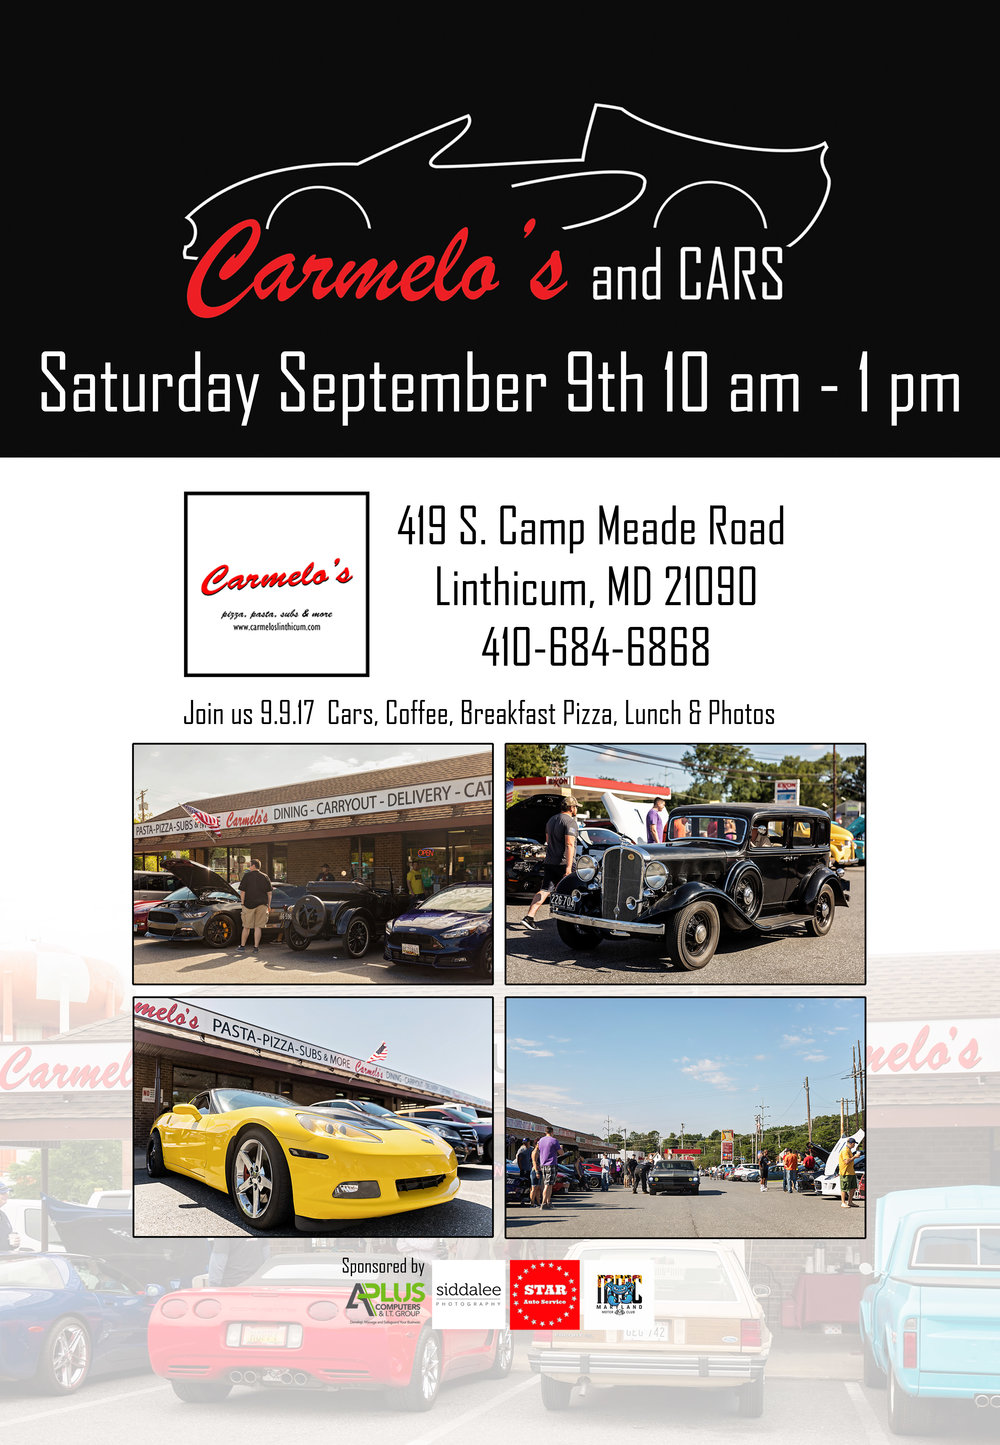 Carmelo's and Cars September